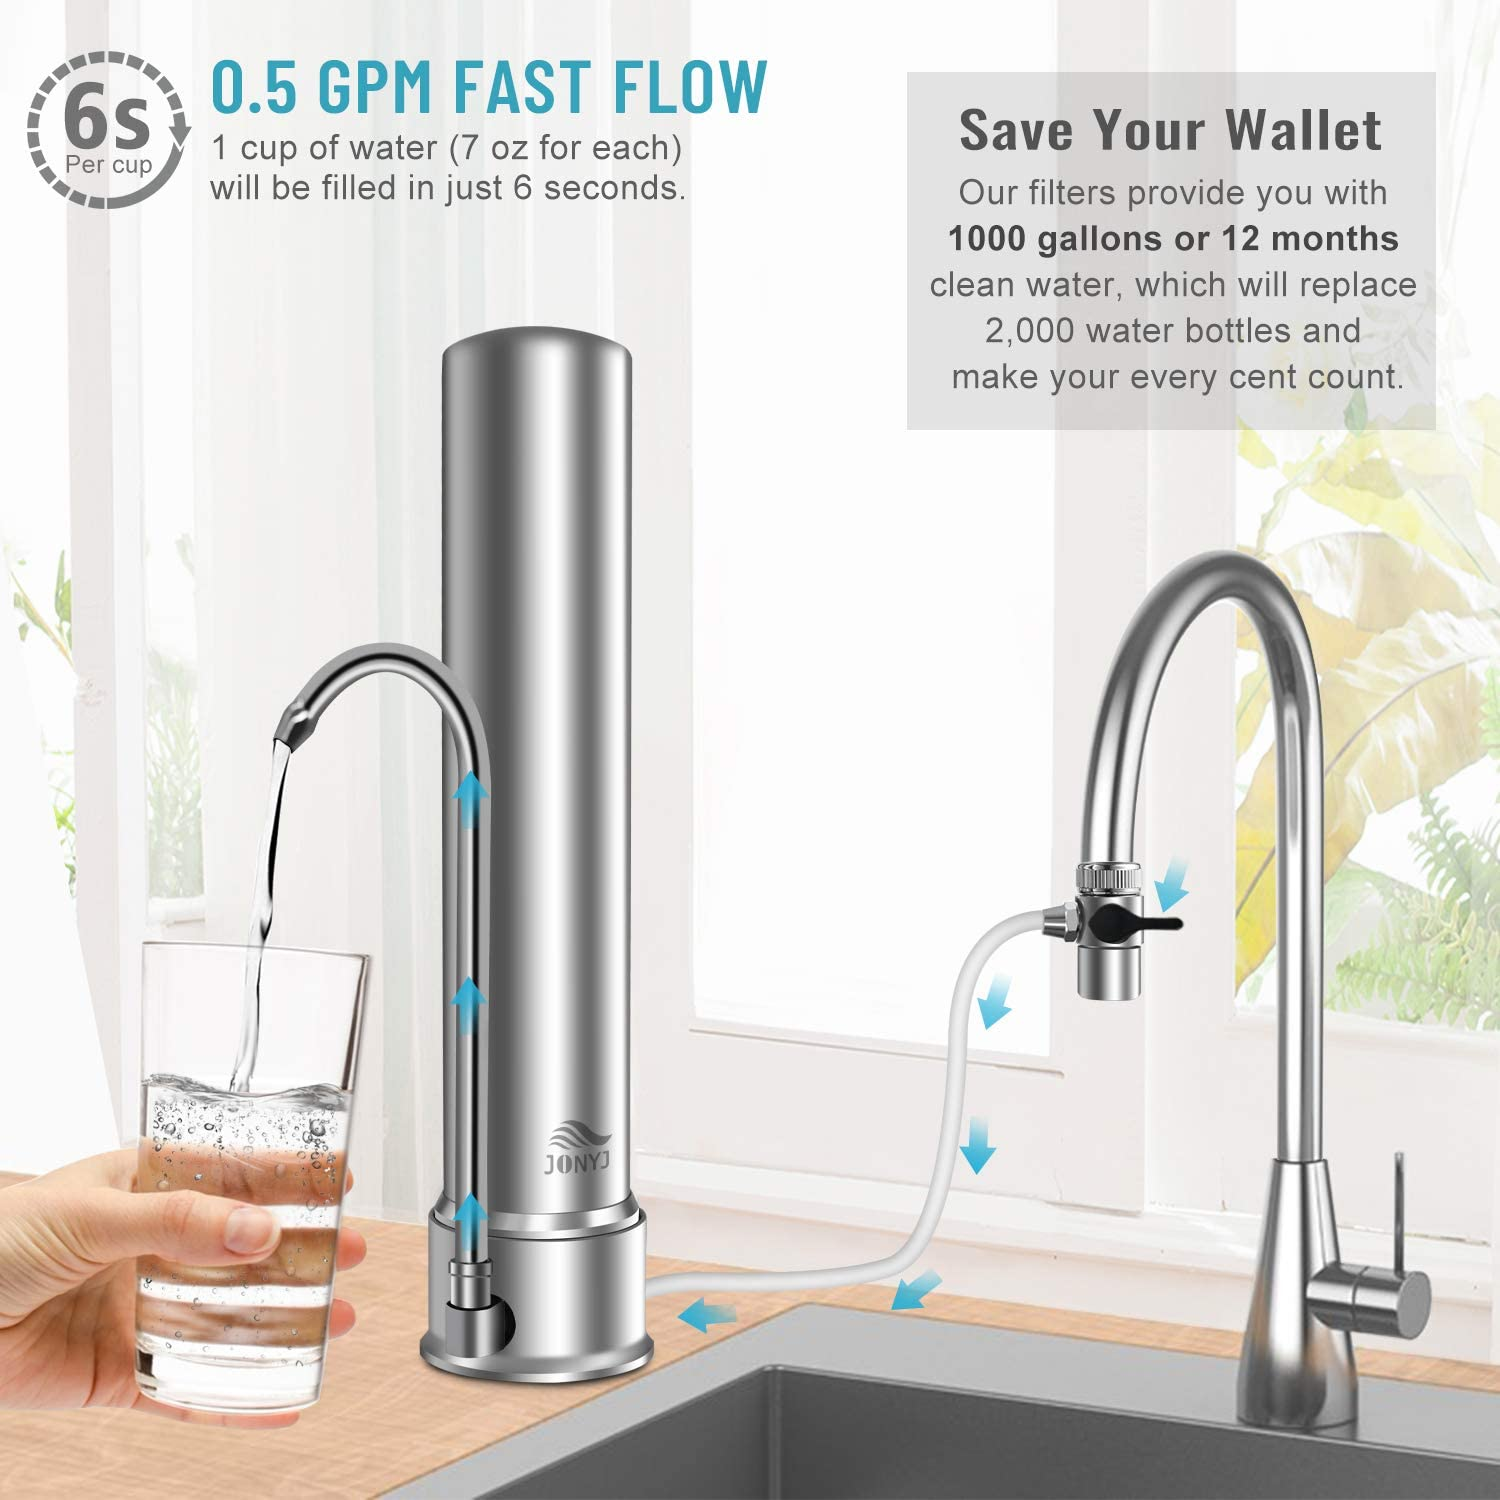 Water Purifier with UF Filtration System Reduces Chlorine 304 Stainless-Steel Faucet Water Filter High Water Flow Tap Water Filter Fits Standard Faucets JONYJ Countertop Water Filter